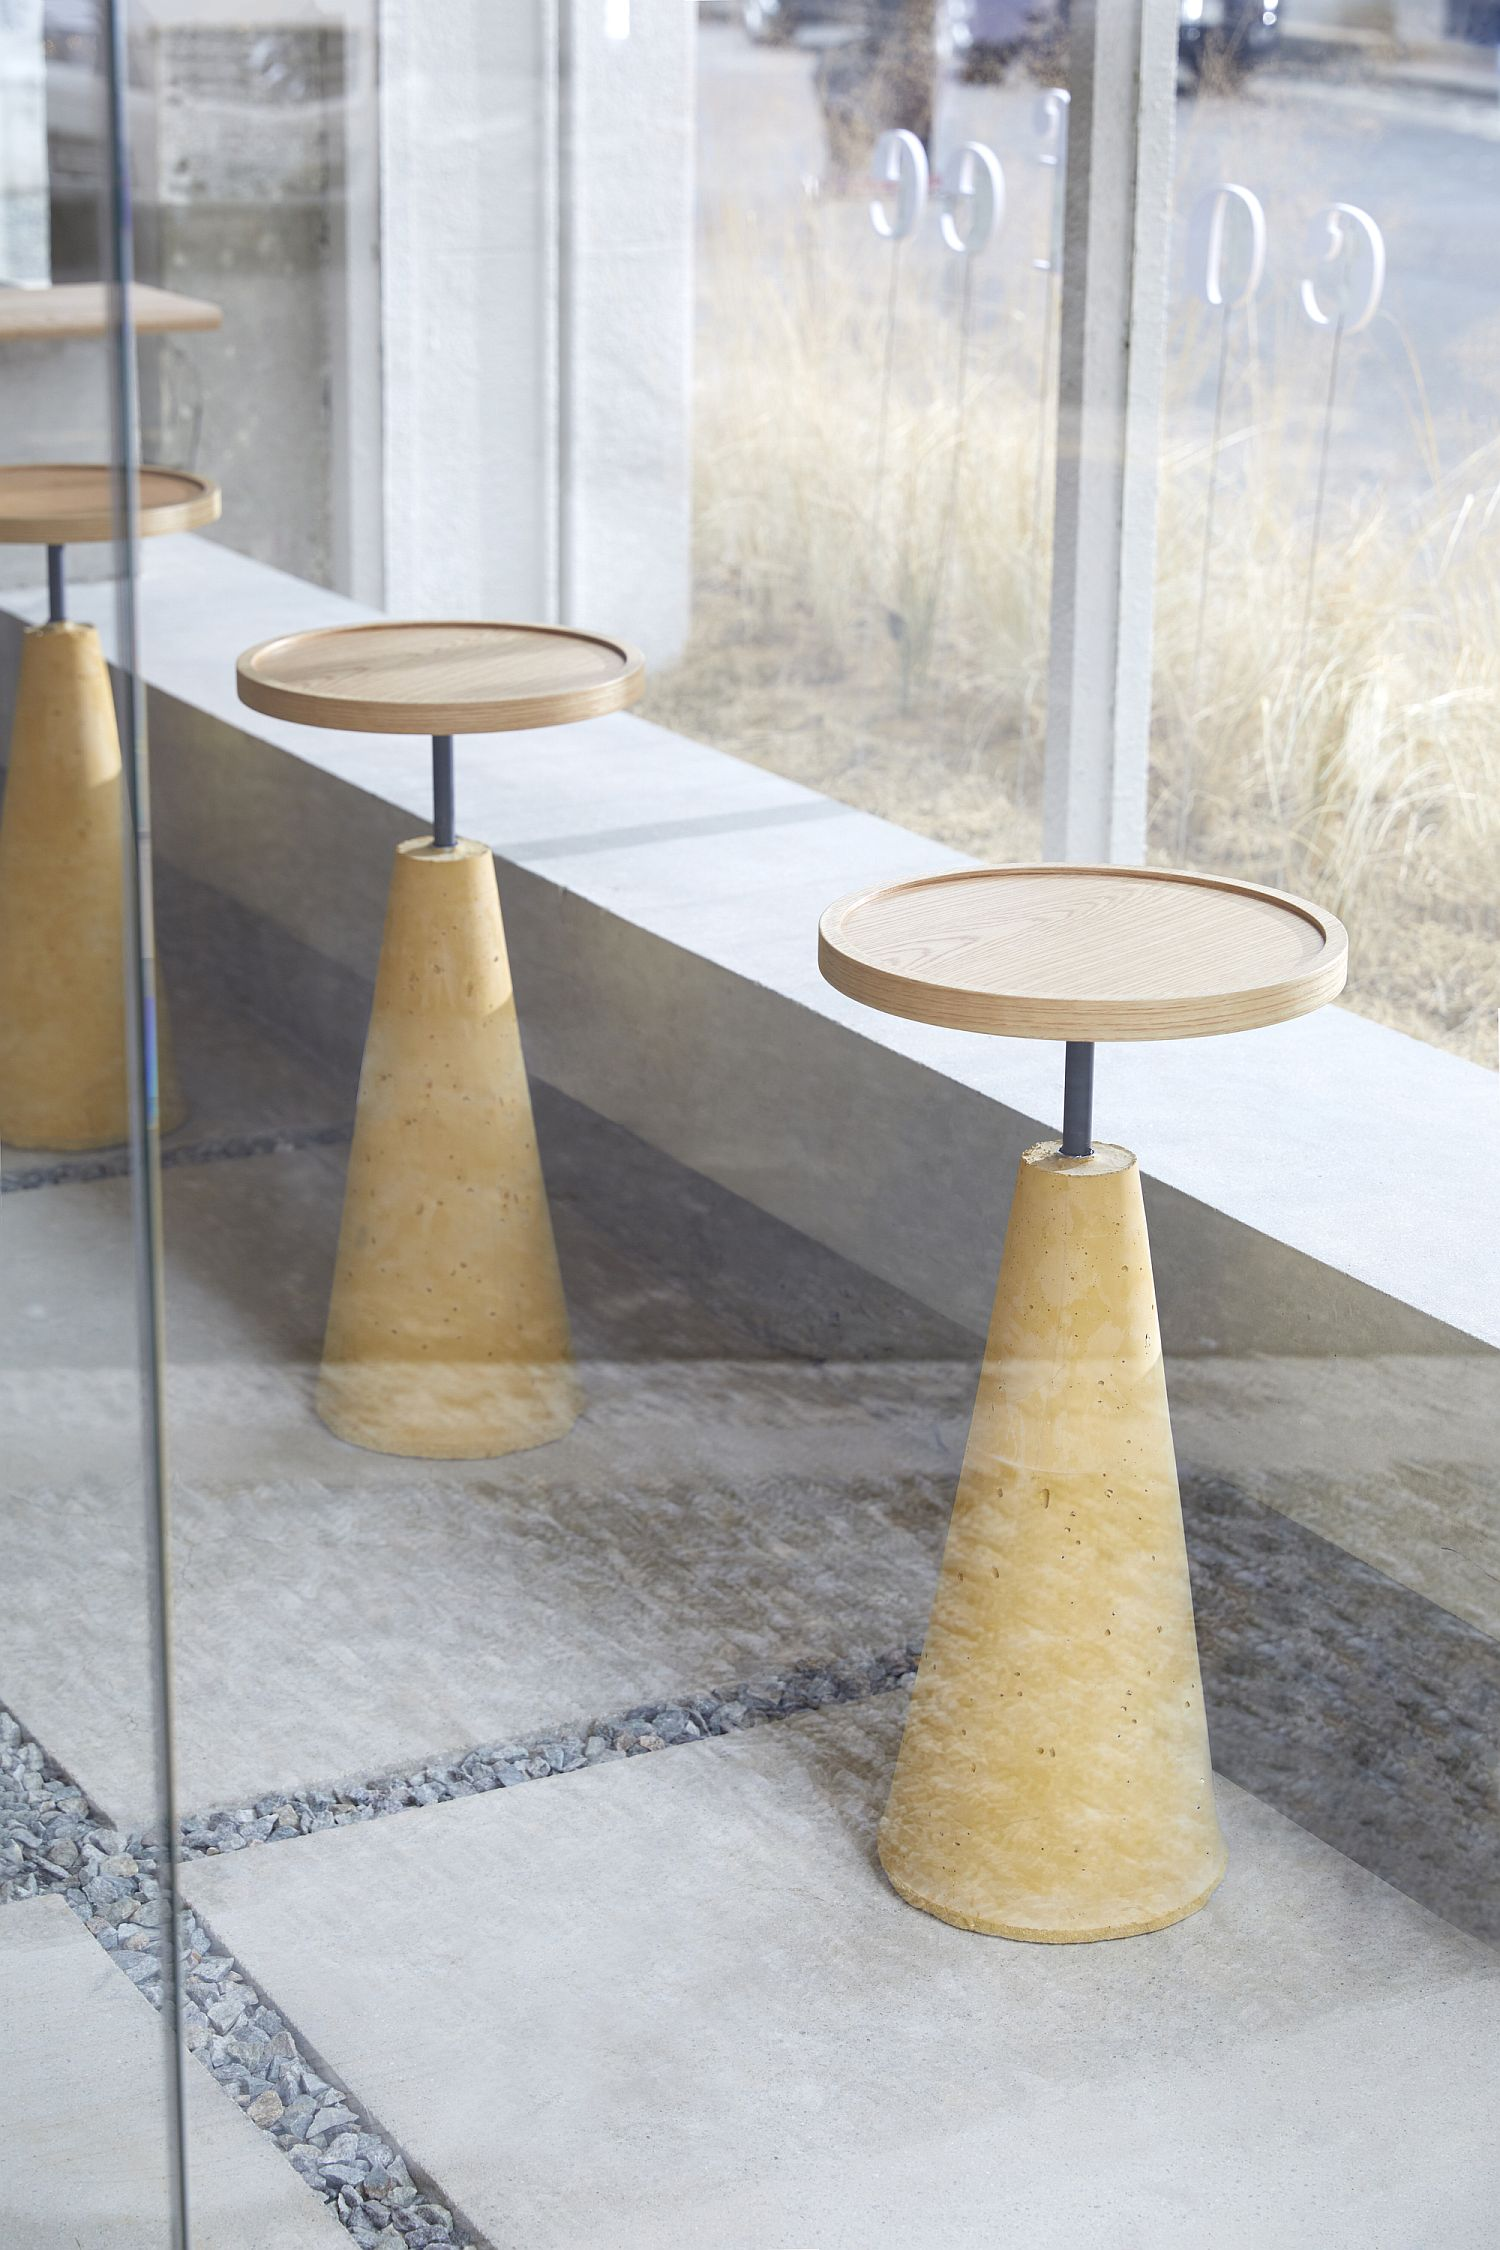 Unique stools offer a casual and elegant sitting space inside the coffee house